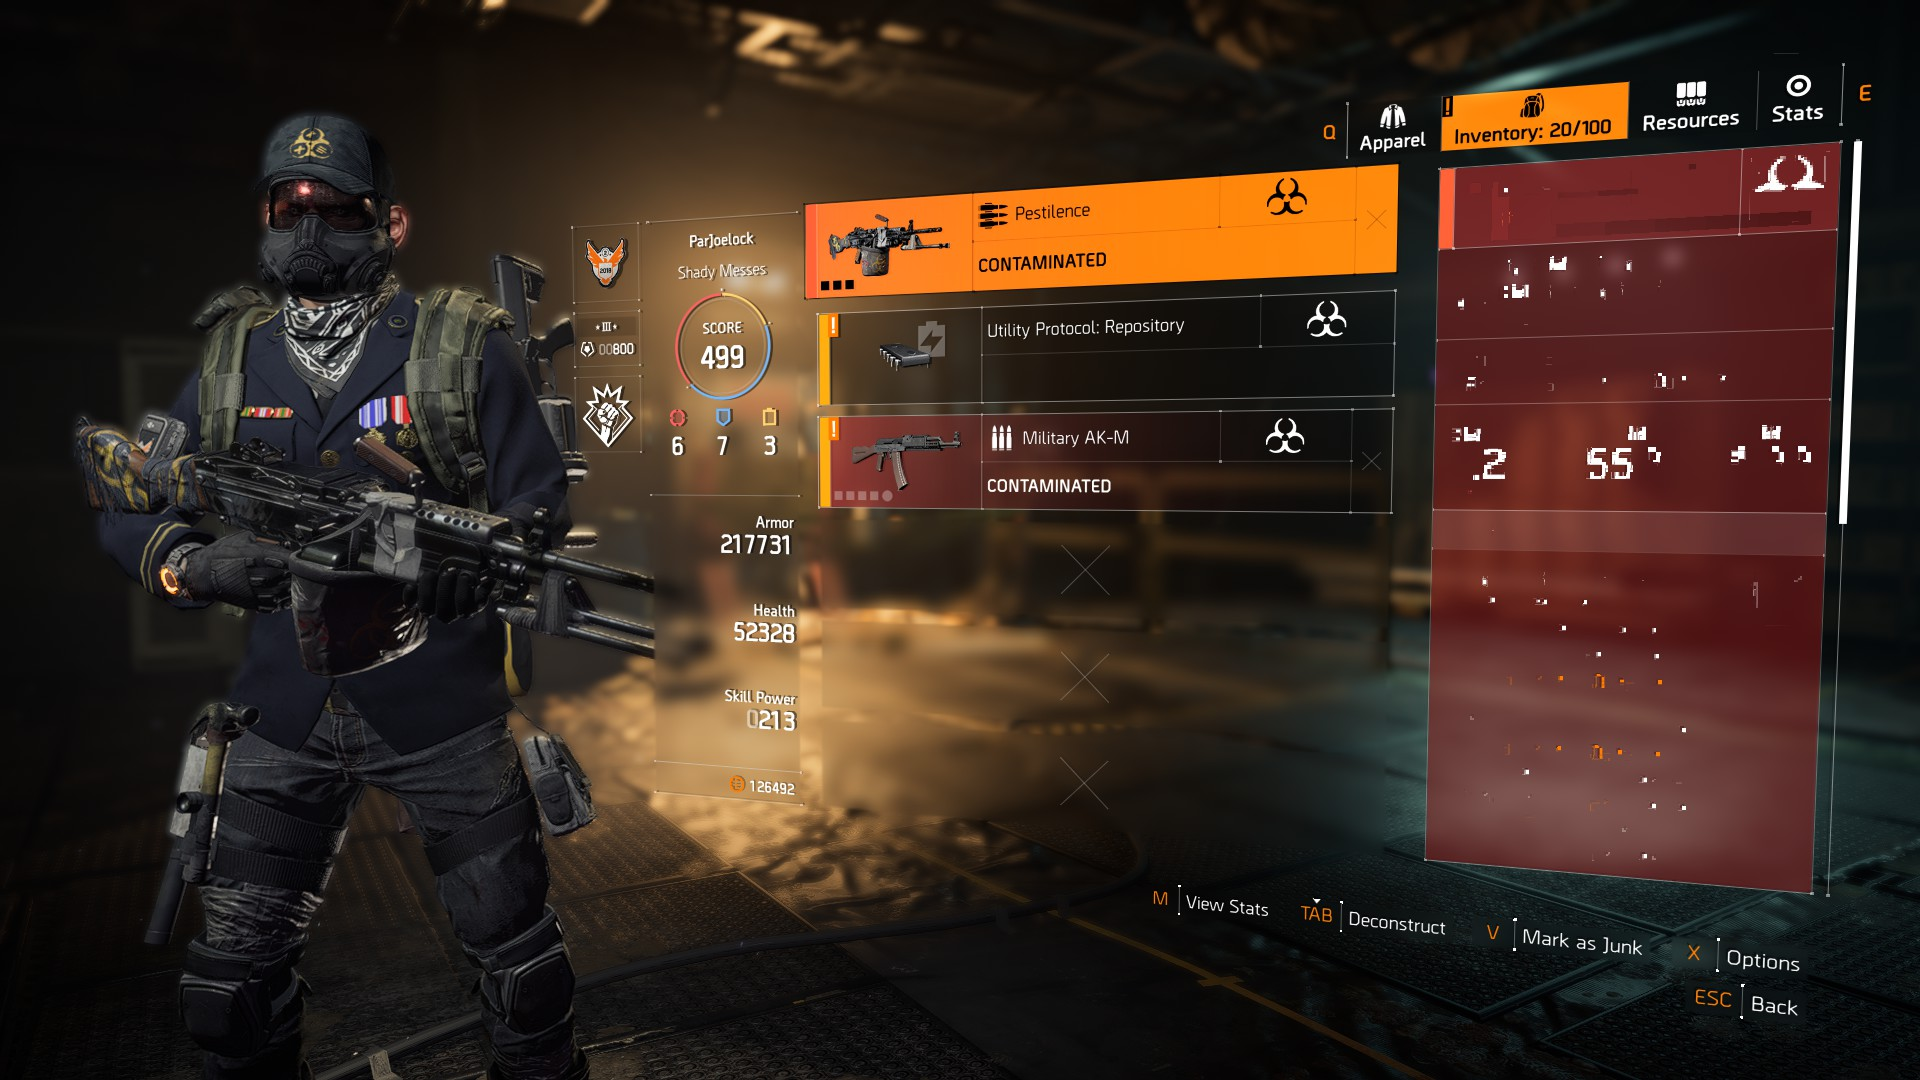 The Division 2 exotics: best guns and guide | PC Gamer